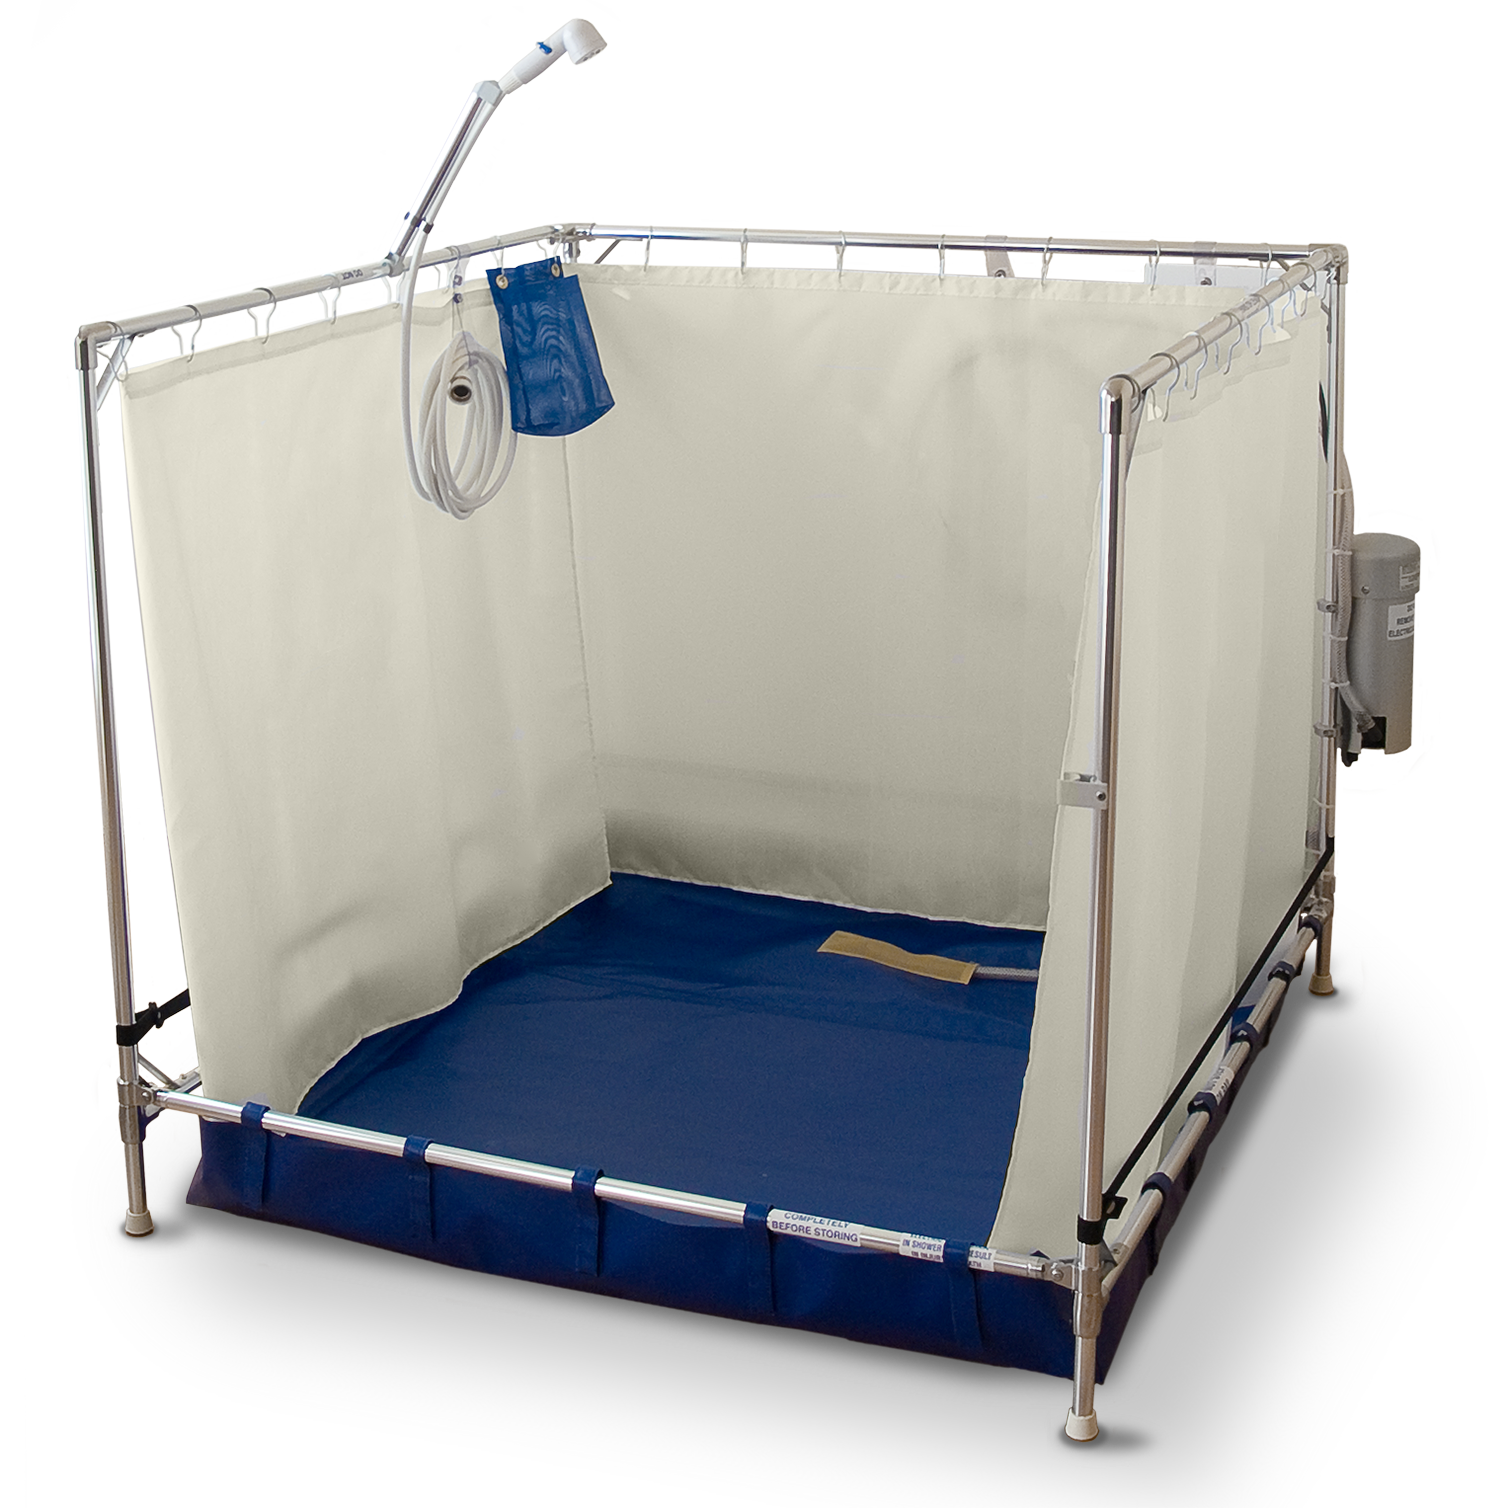 FAWSsit B5000 Bariatric portable shower stall.